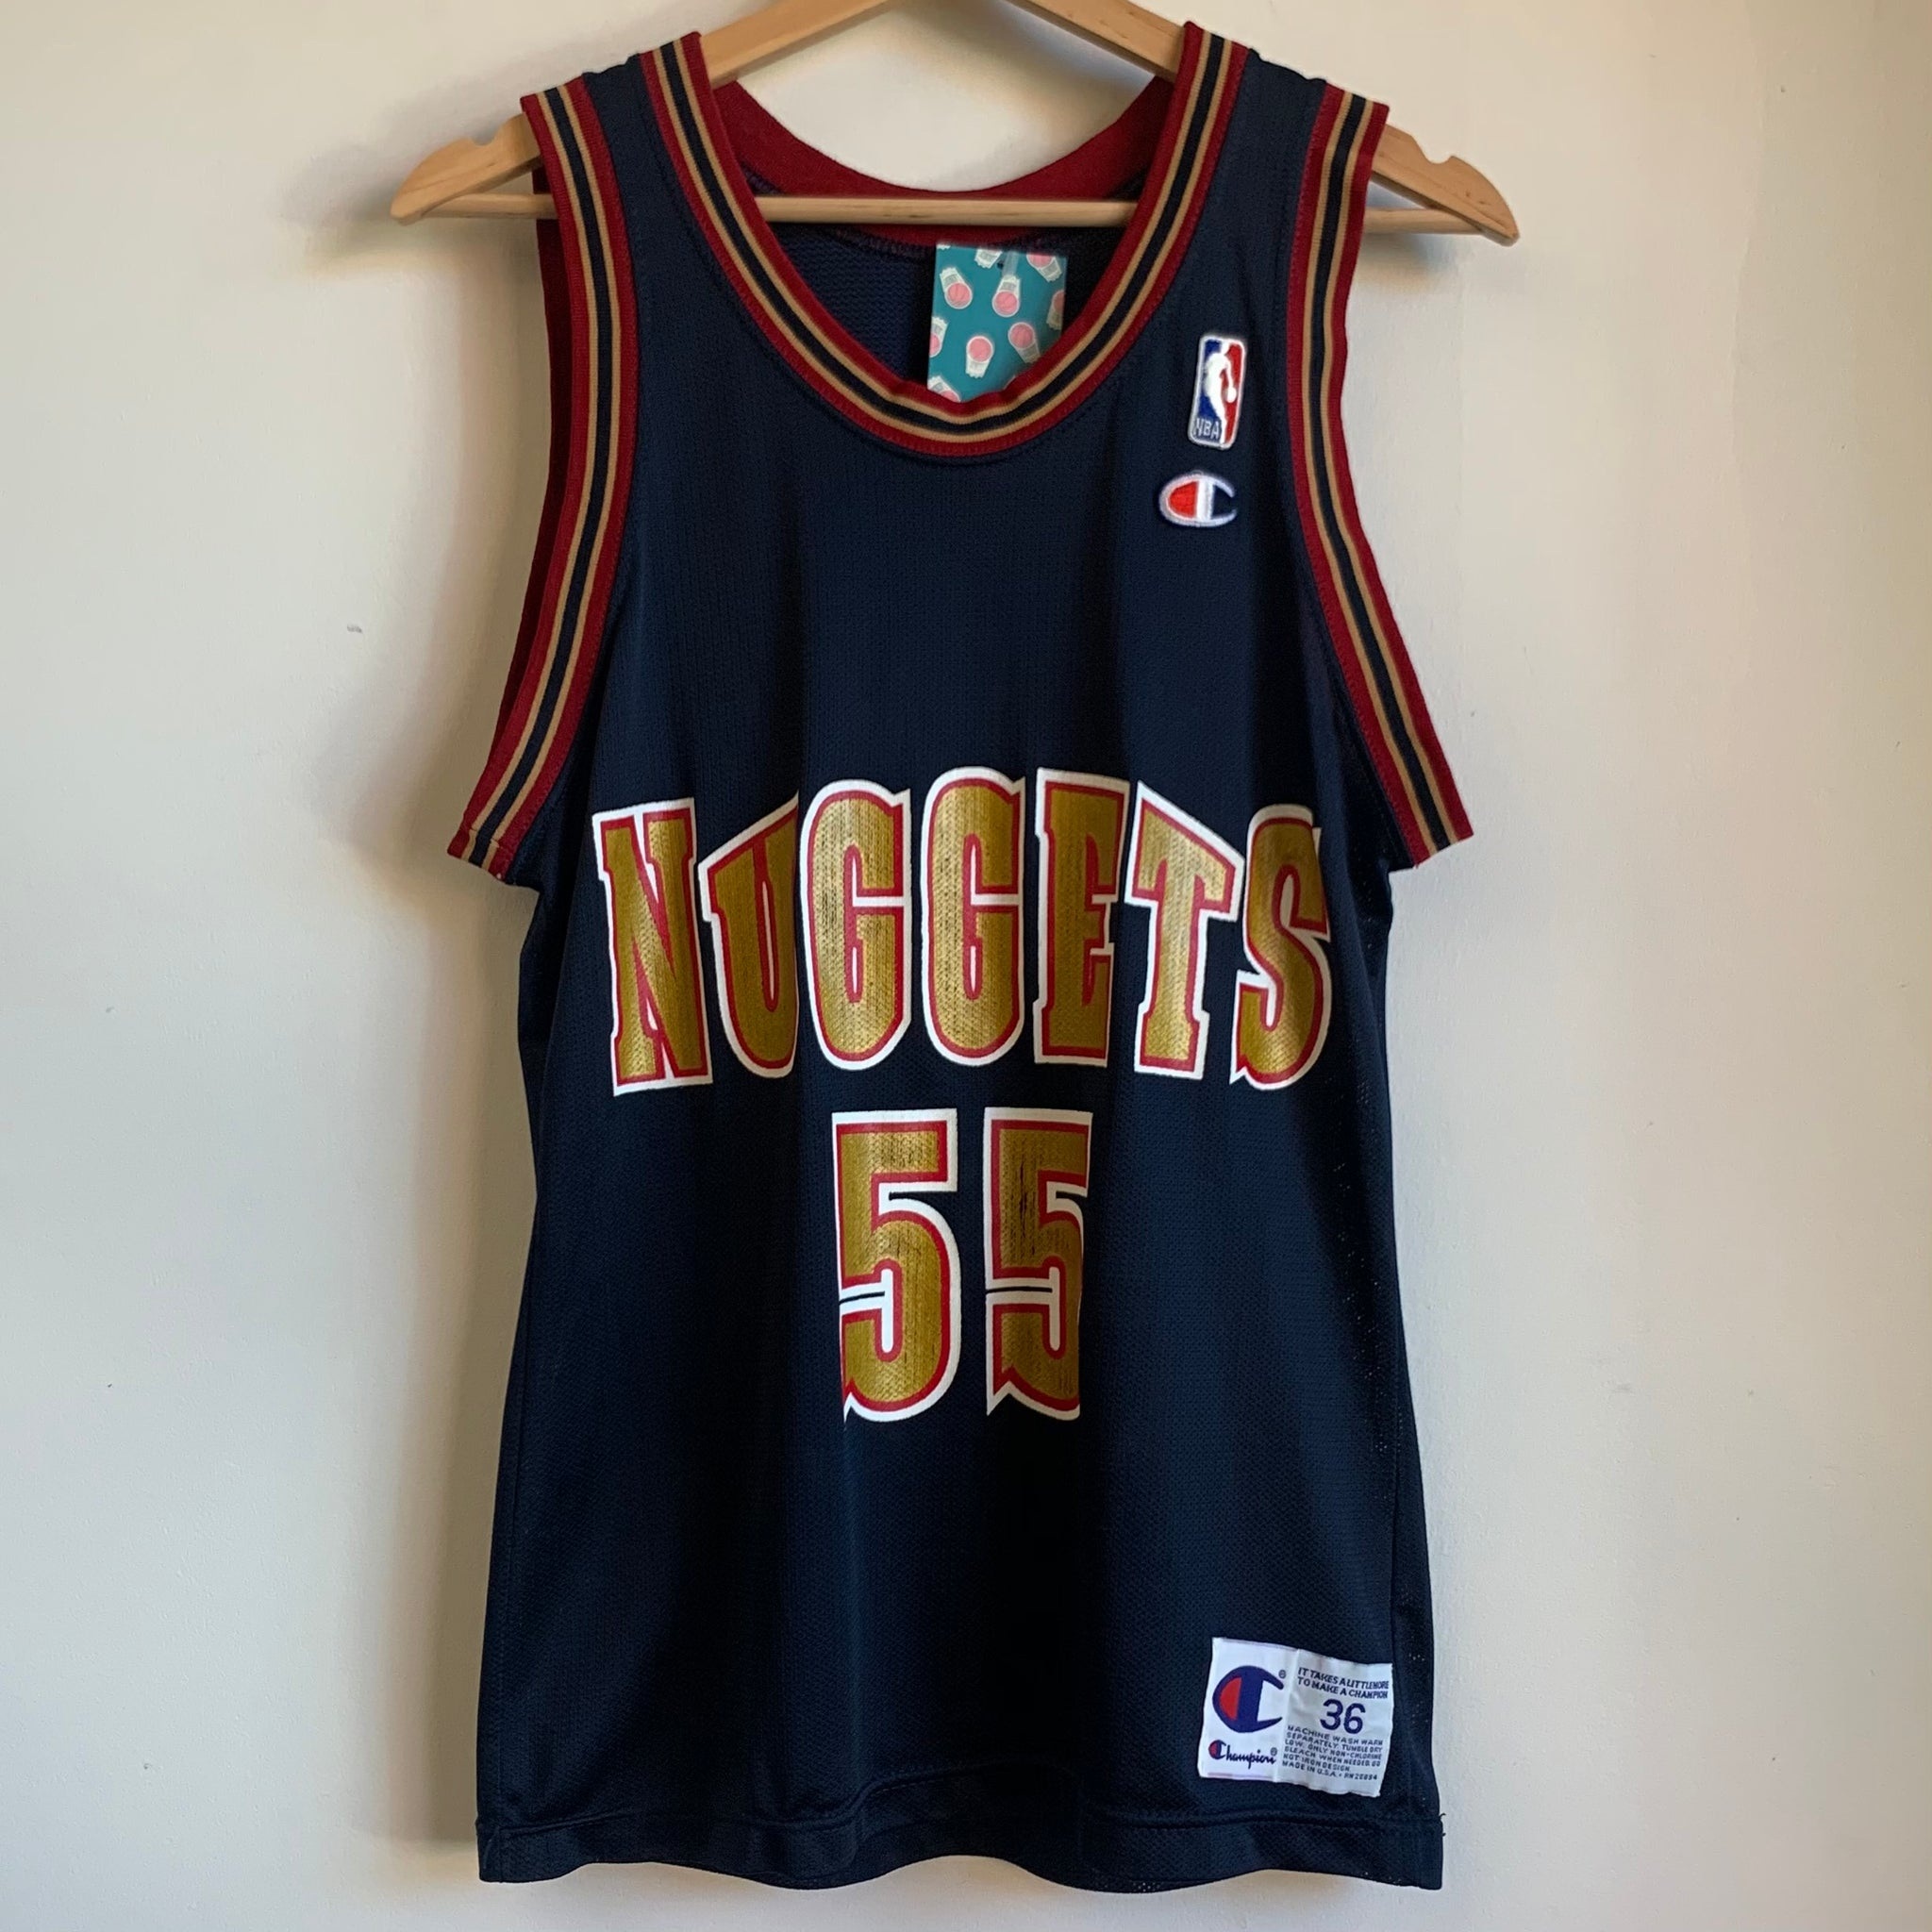 Champion Dikembe Mutombo Denver Nuggets Basketball Jersey